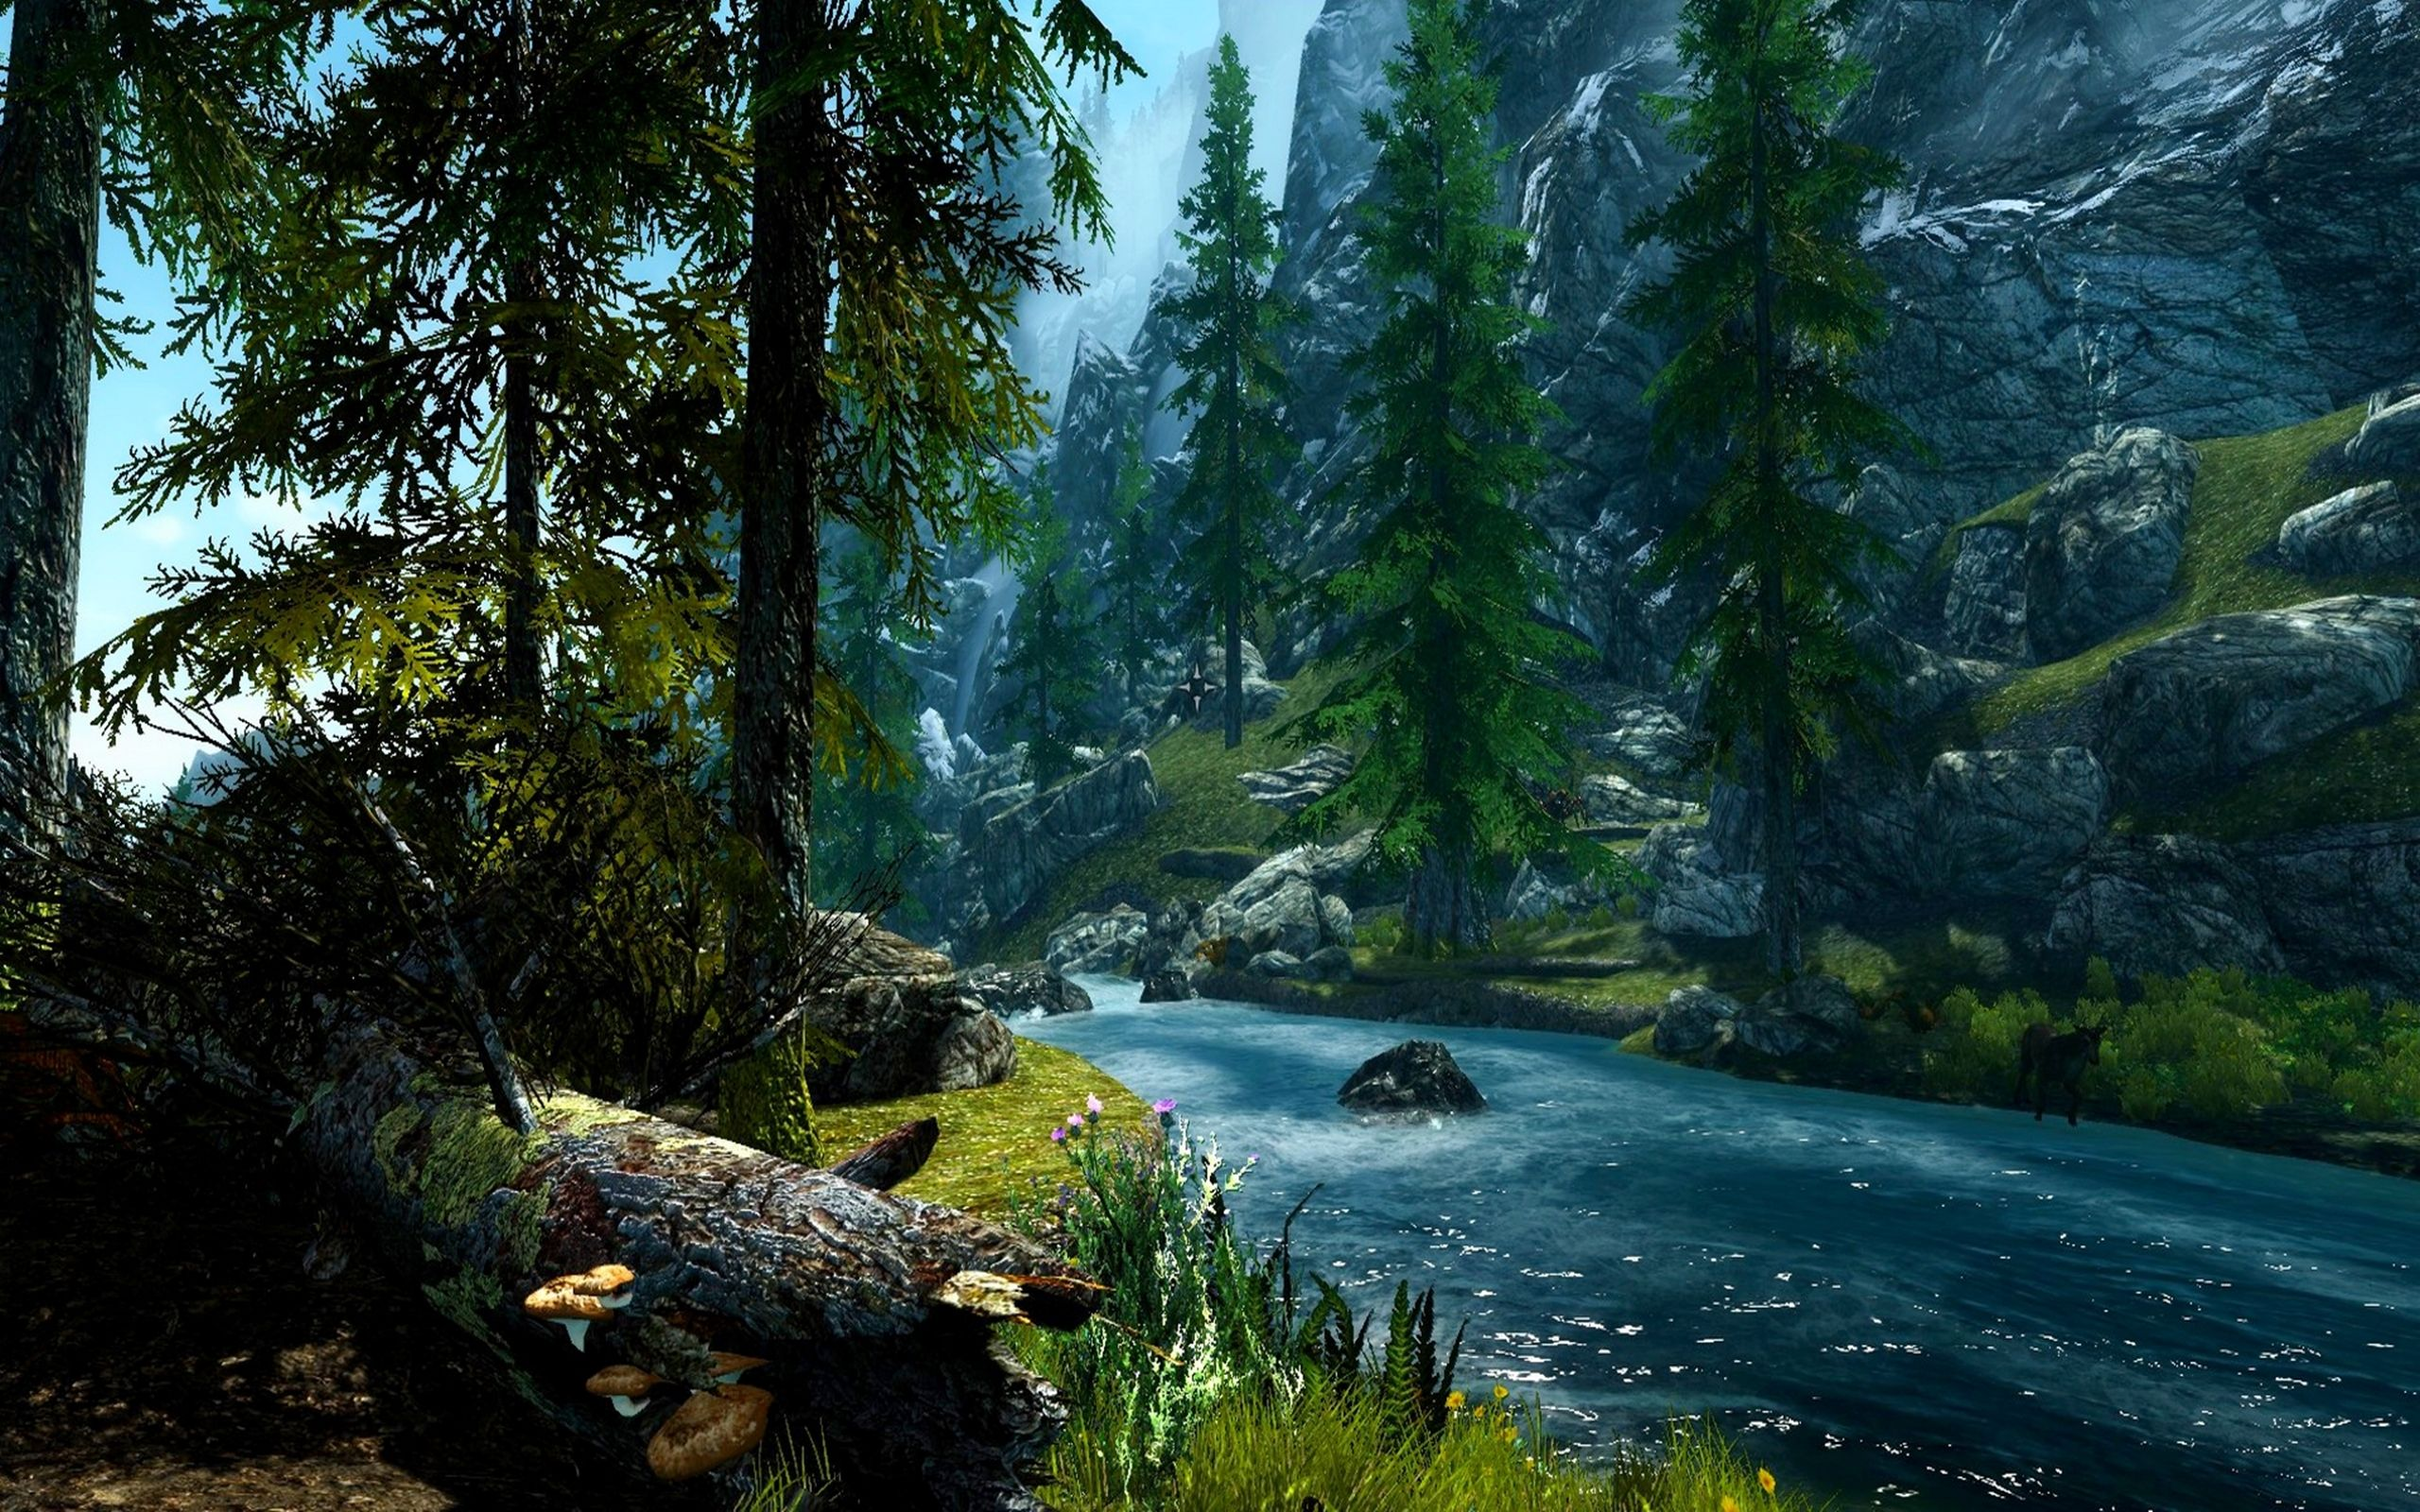 Great Wallpaper Mountain Forest - 7429be224433f8dfada03db9bb721394  Trends_31770.jpg